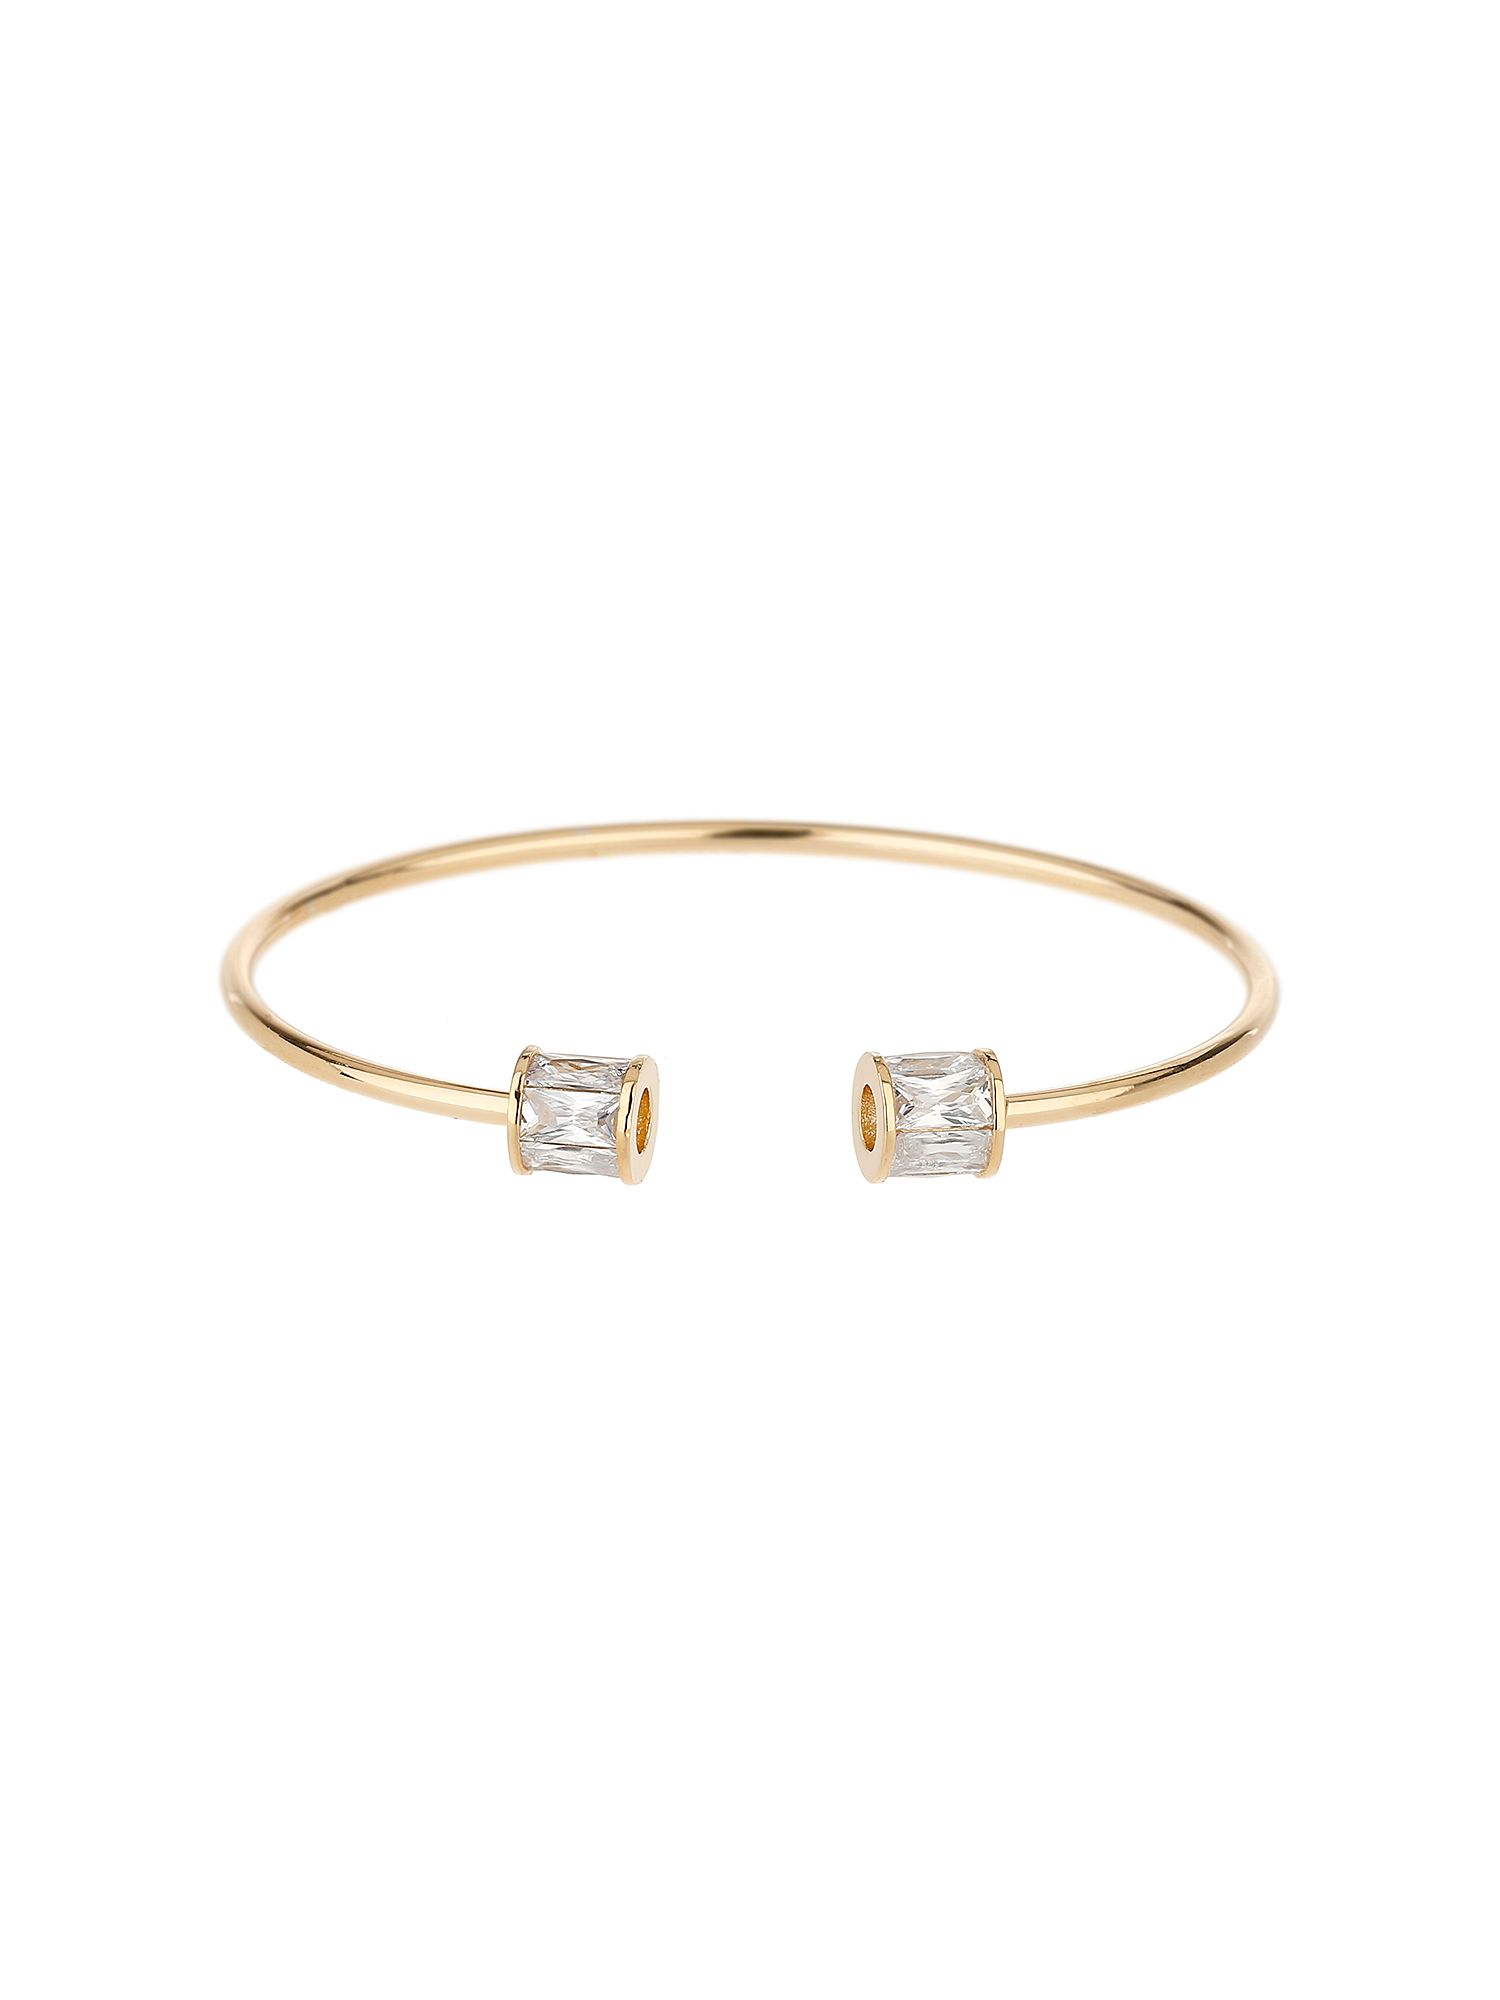 Mikey Baugette Bead End Cubic Cuff Bangle, Gold